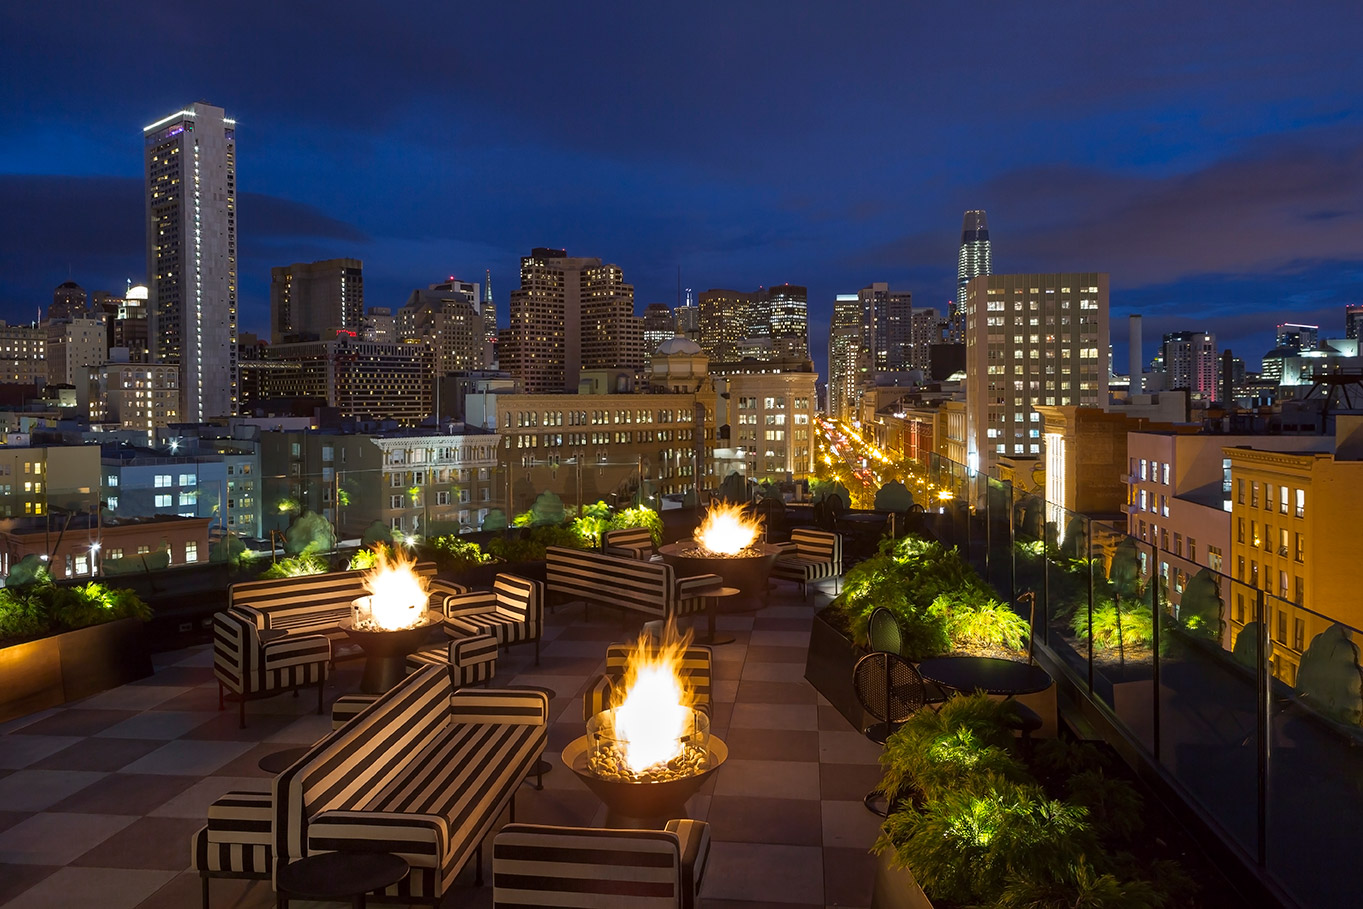 Exchange at Proper San Francisco Rooftop - The San Francisco Exchange will take place on the Rooftop of our new member, the San Francisco Proper Hotel. Proper Hospitality sets new standards in terms of lifestyle and original establishments - we are proud and excited for you to discover our new addition!